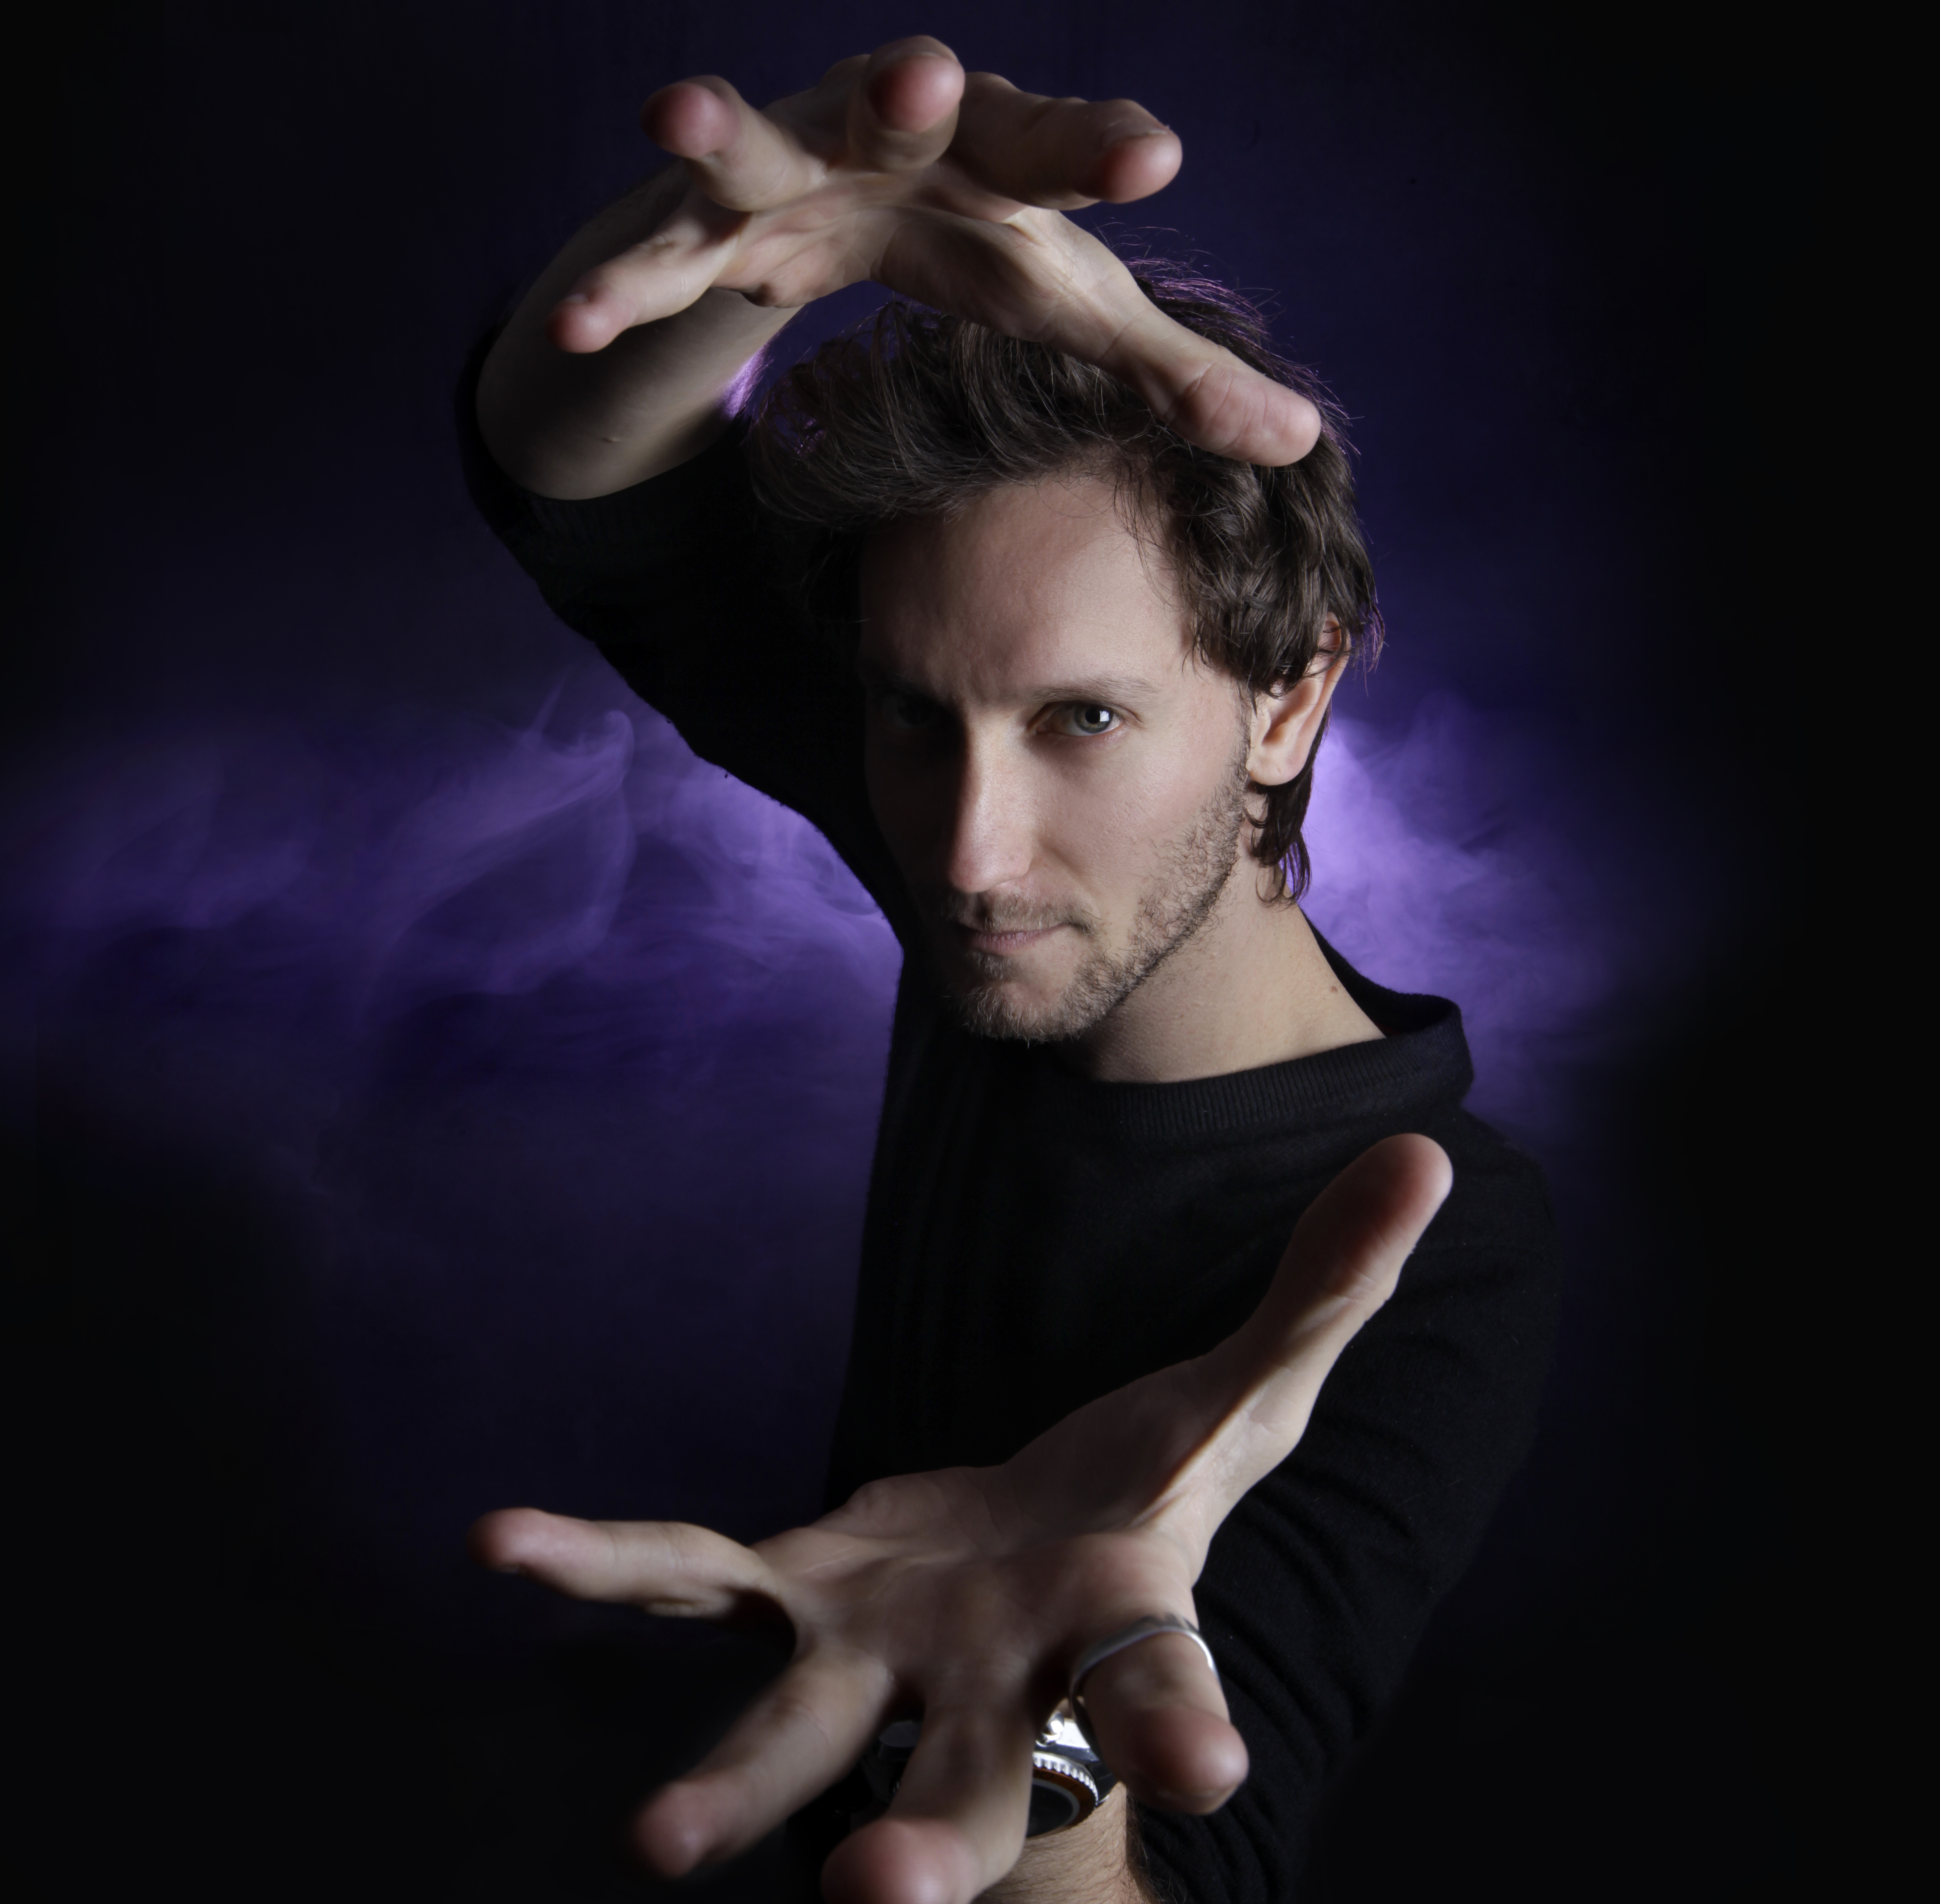 LIOR SUCHARD IS A WORLD RENOWNED SUPERNATURAL ENTERTAINER WHOHAS THE ABILITY TO READ MINDS.